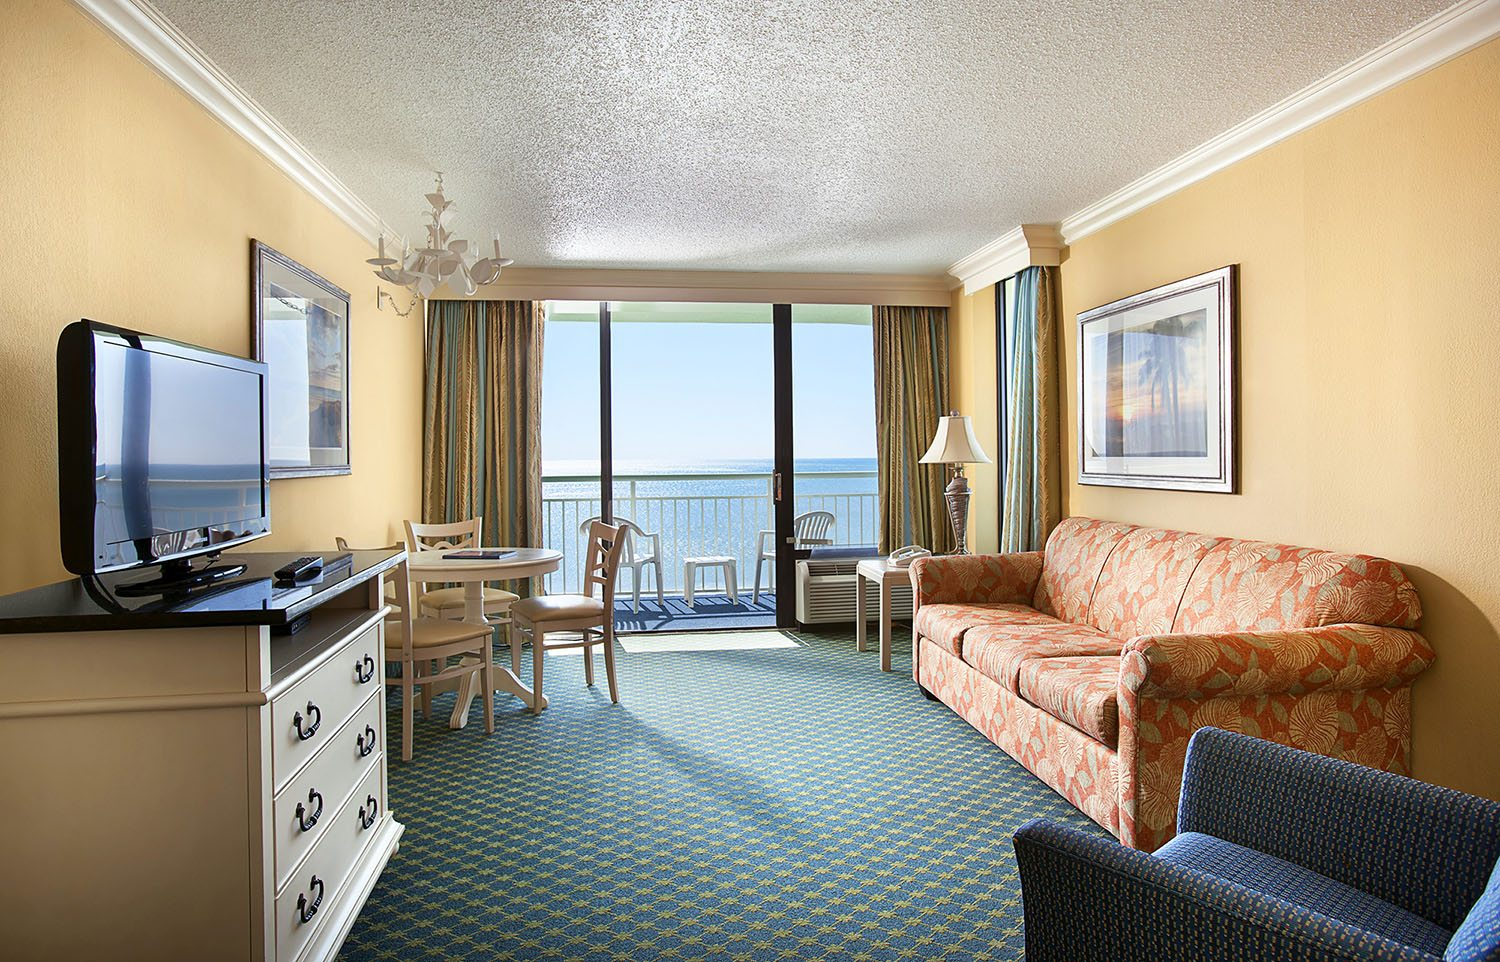 Oceanfront King Suite At Coral Beach Resort, Myrtle Beach. Rooms To Go King Size Bed. Hotels In San Antonio With Jacuzzi In Room. Beach Themed Decor. Rugs For Girls Room. Led Decorative Bulbs. White Decorative Mirror. Horse Statue Home Decor. Hotels With Jacuzzi In Room In Baltimore